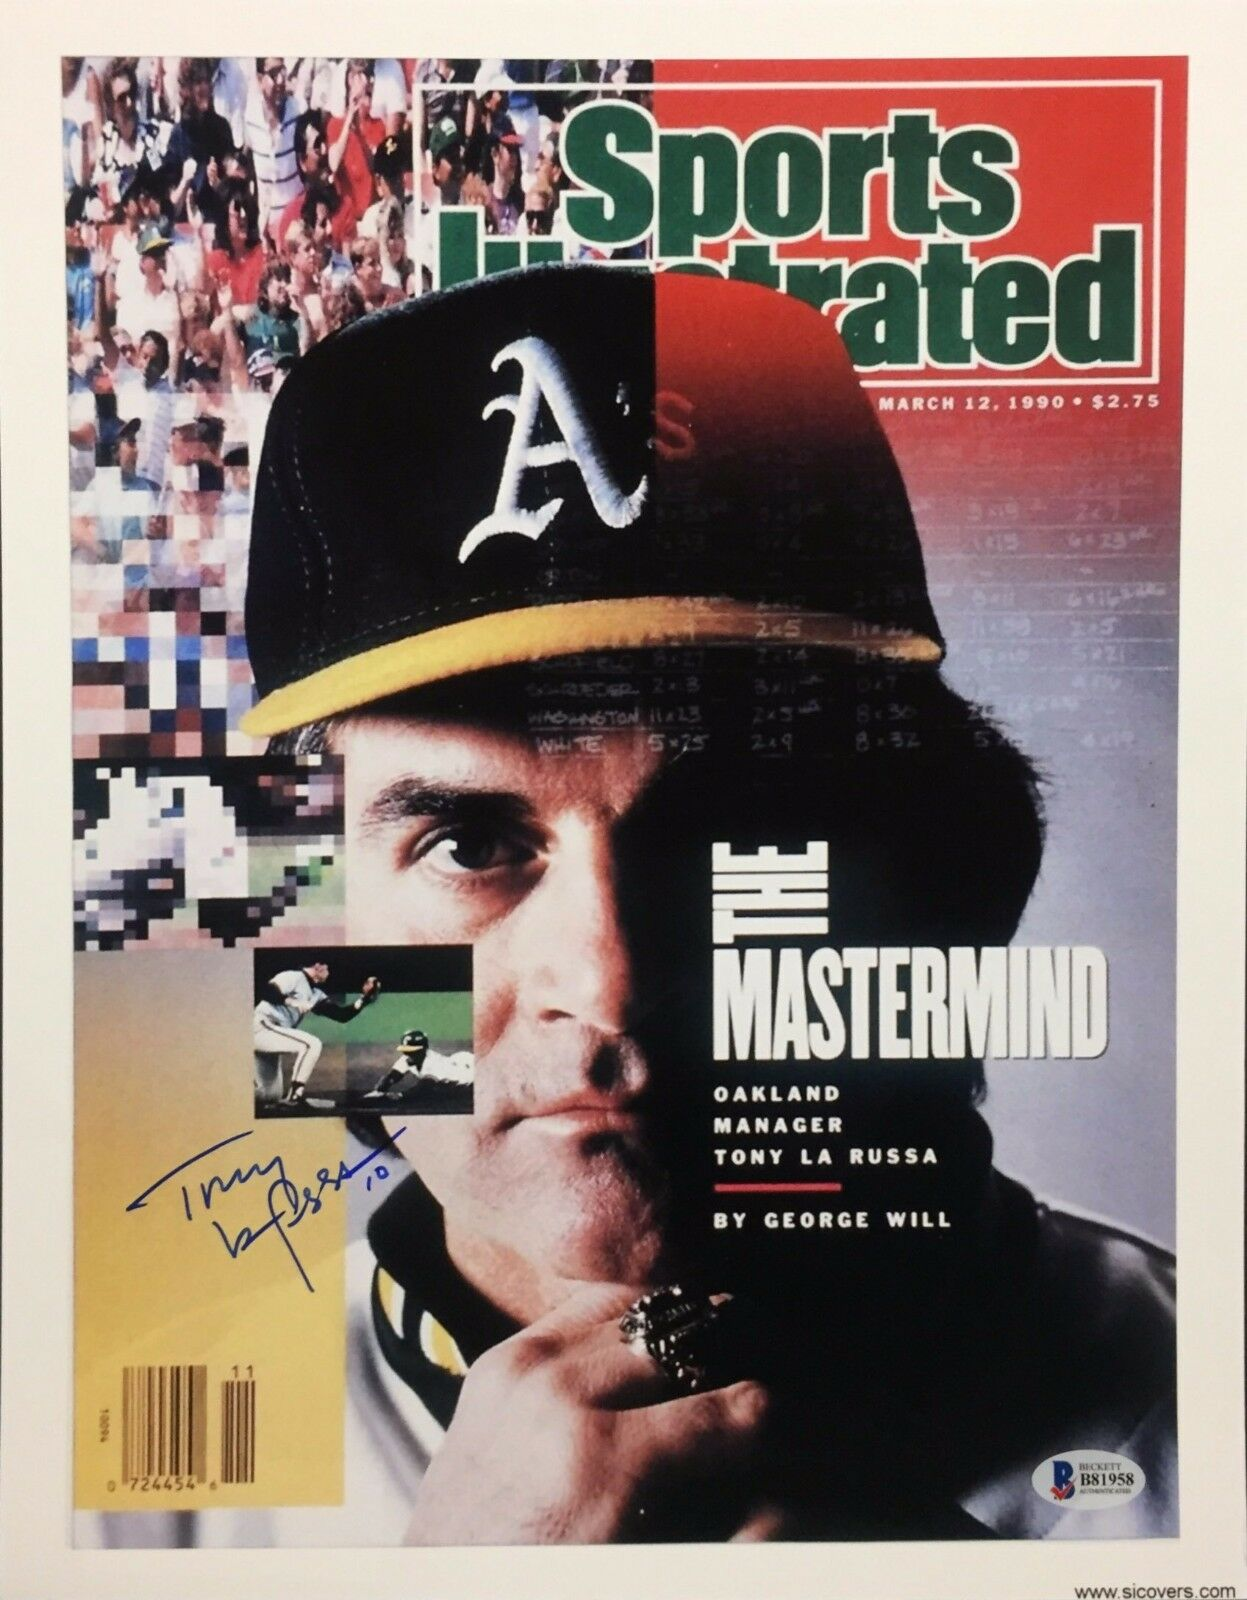 Tony La Russa Signed 11x14 Sports Illustrated Cover Photo *Athletics Beckett BAS